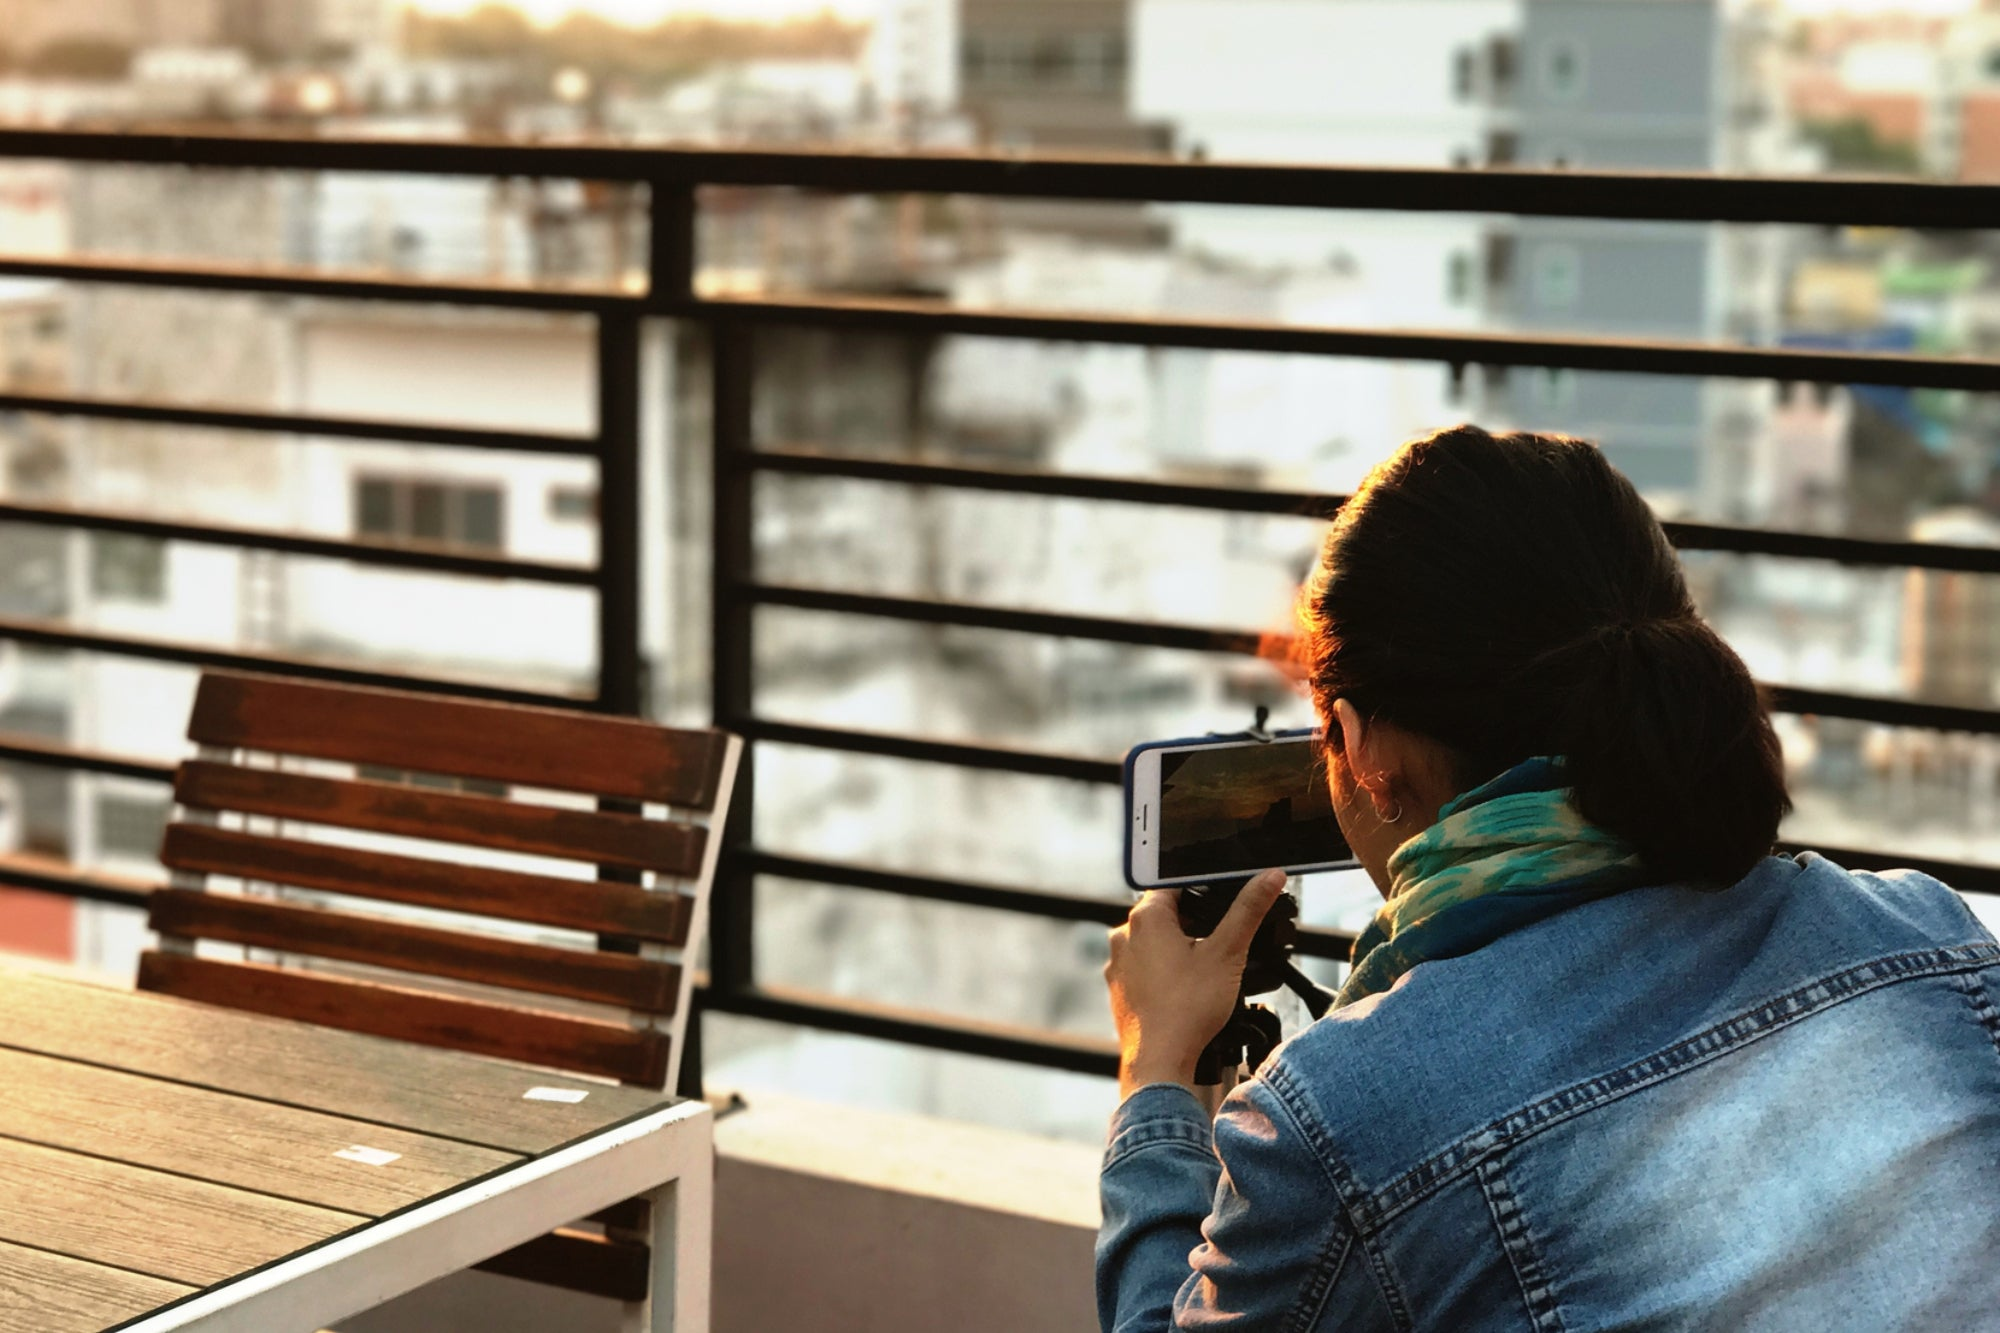 9 Tips for Taking the Perfect Social Media Photo